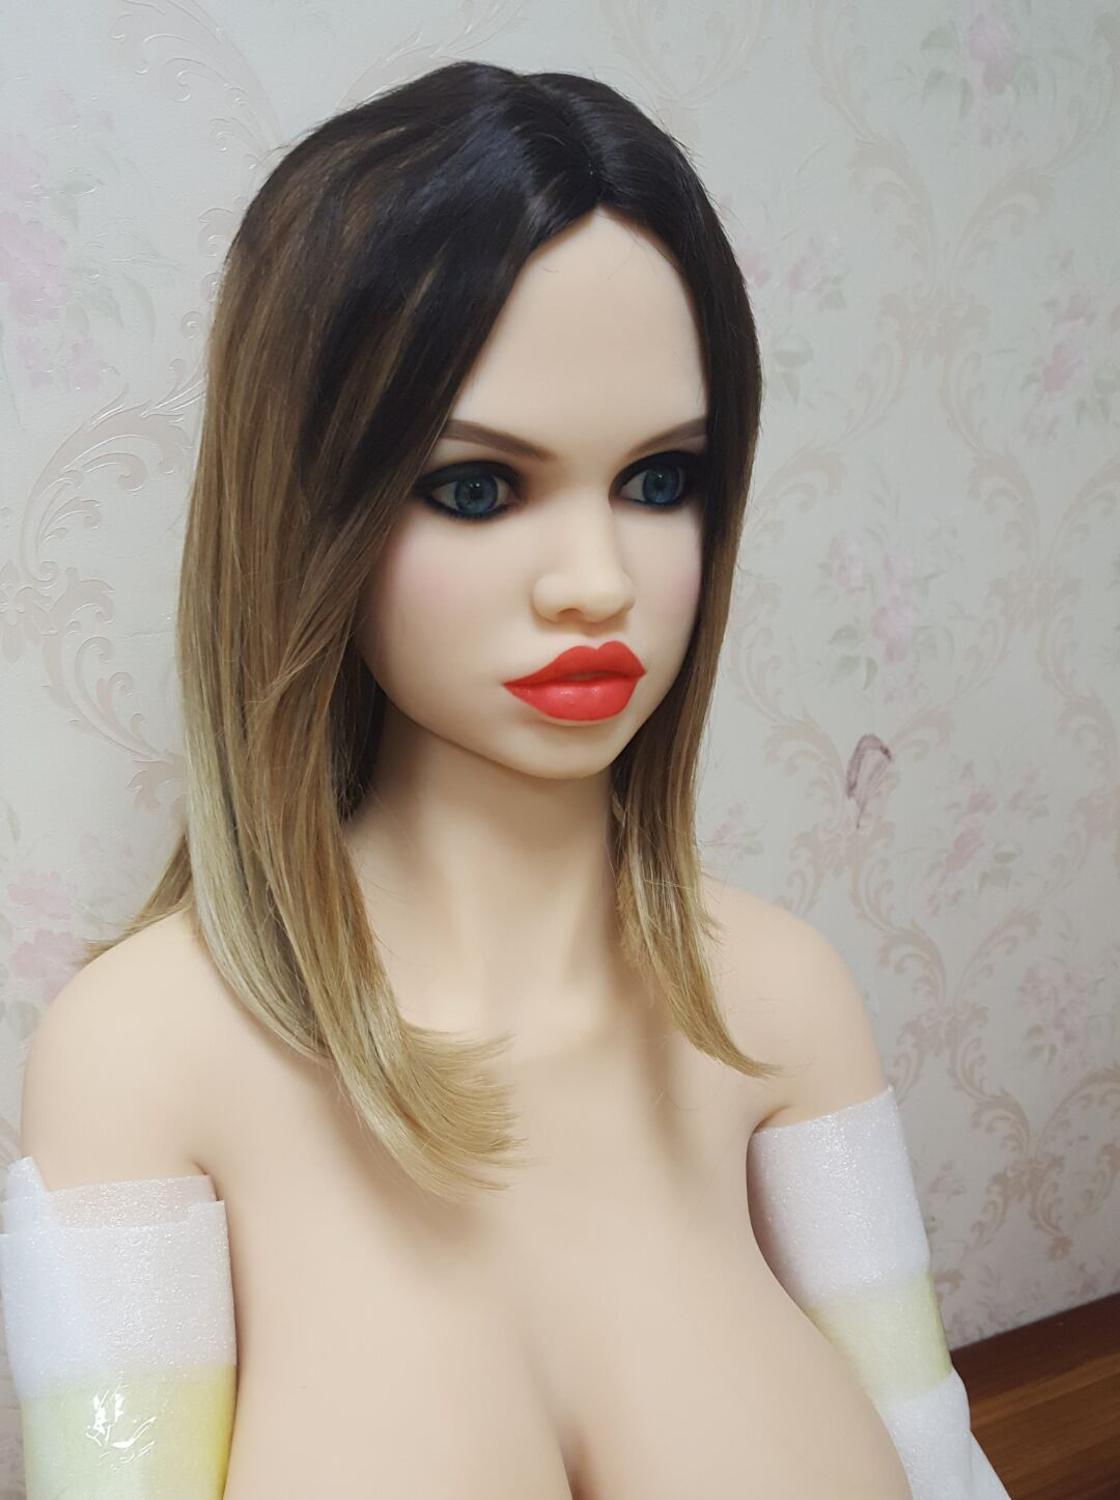 Europe face #66 oral <font><b>sex</b></font> <font><b>doll</b></font> <font><b>head</b></font> for big size 135cm/140cm/148cm/153cm/152cm/155cm/158cm/163cm/165cm/170cm image